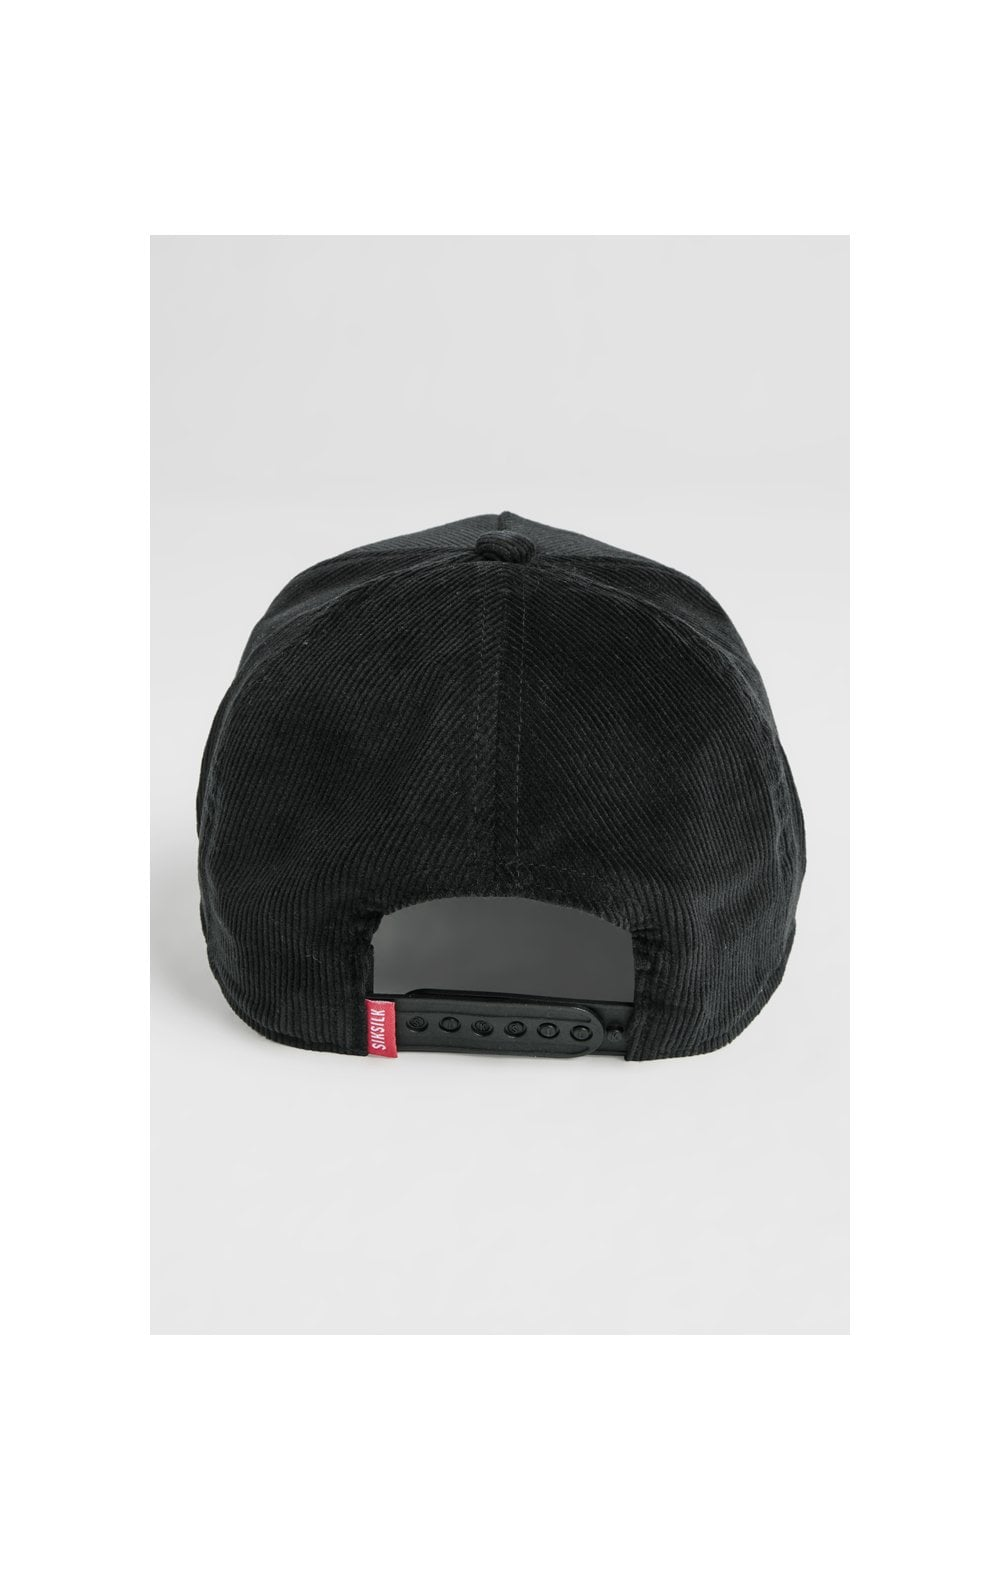 Load image into Gallery viewer, SikSilk Corduroy Full Trucker - Black (6)